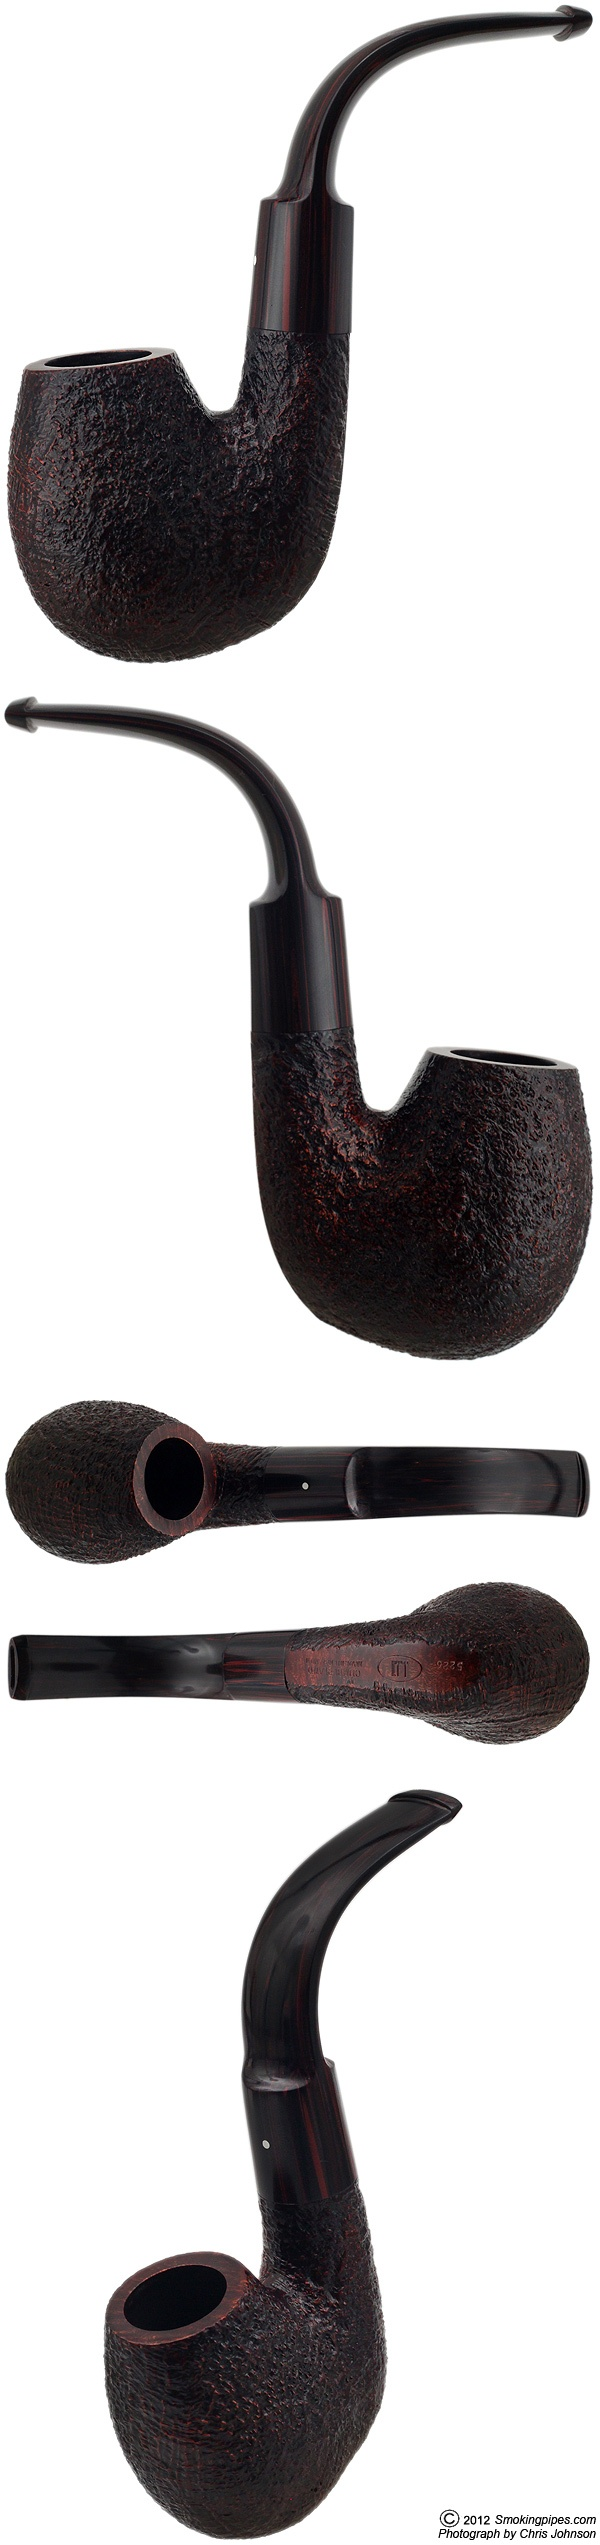 I hate Dunghills but love this shape. At over $600, I'll go somewhere else, always.Dunhill: Cumberland (5226) (2011)